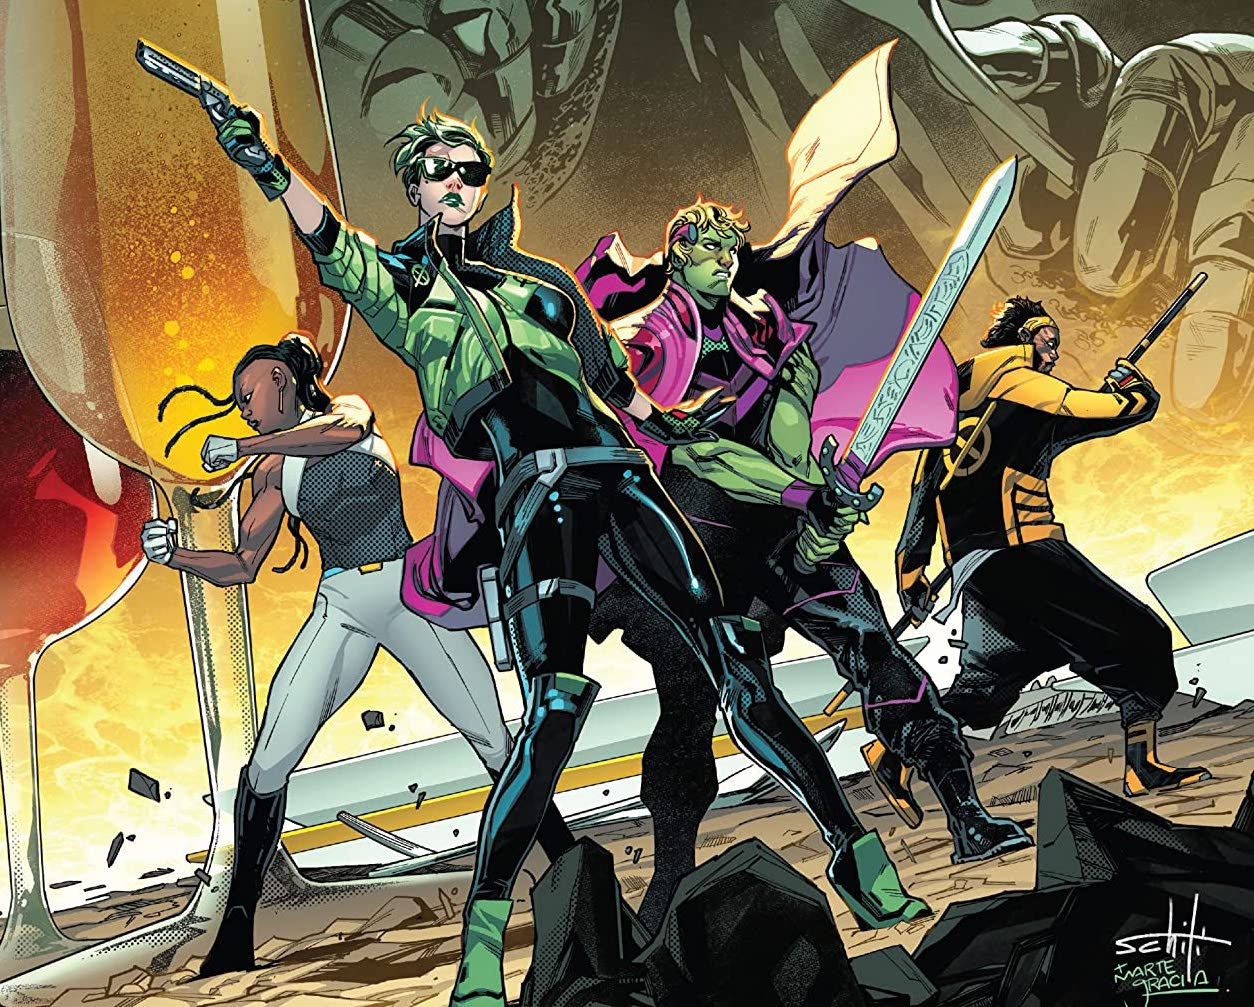 The team of Sword, Frenzy, Manifold, and Abigail brand, standing alongside Hulkling, the kind of space.